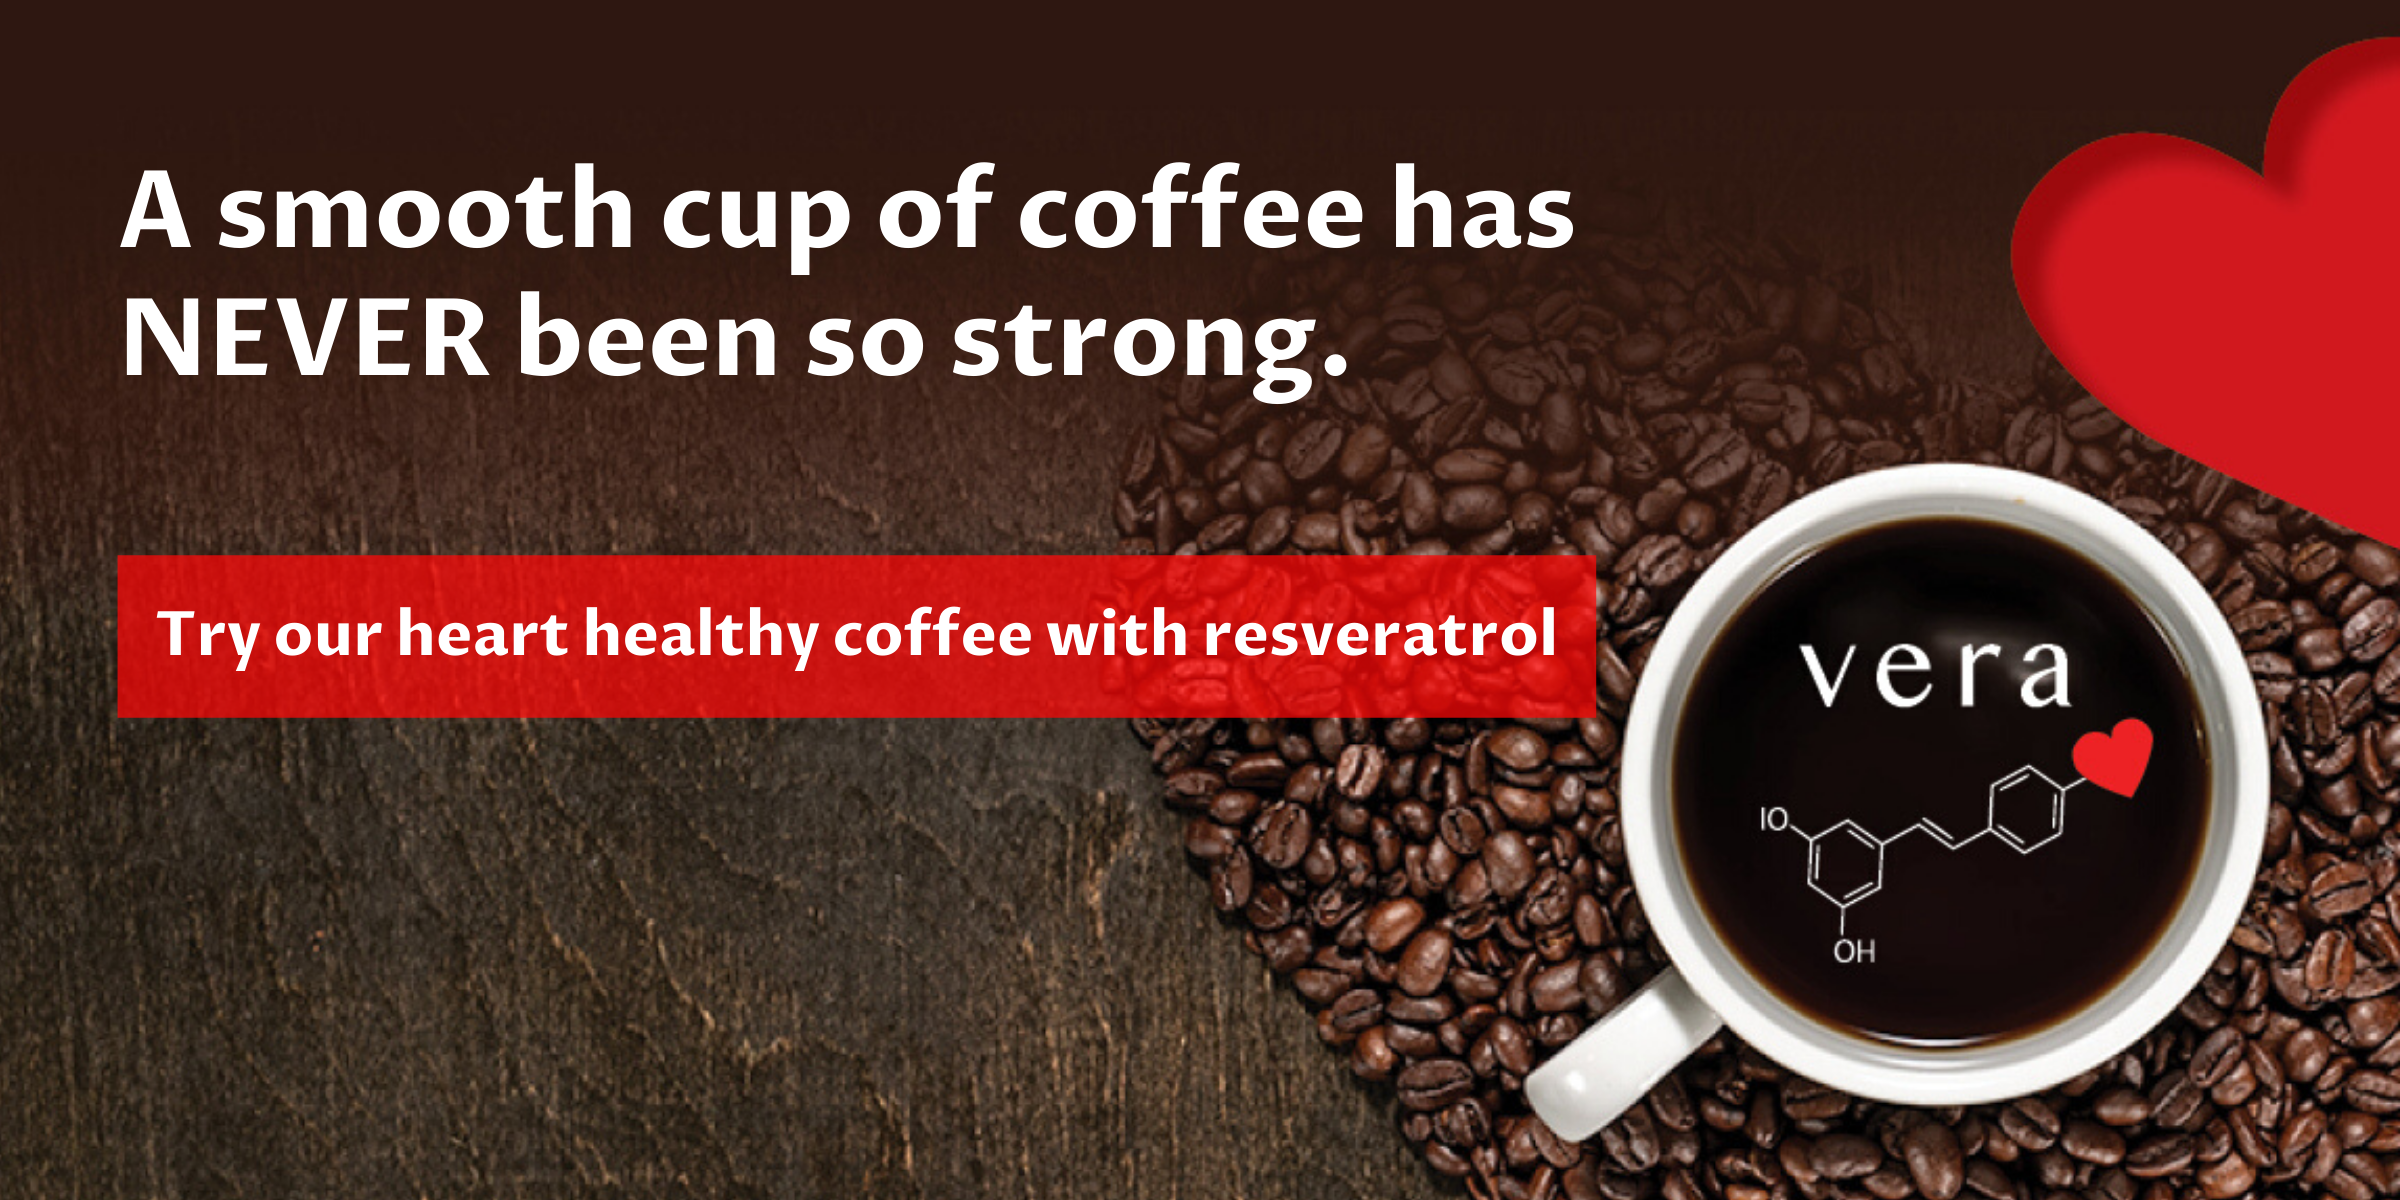 heart healthy coffee with resveratrol banner, coffee mug with logo